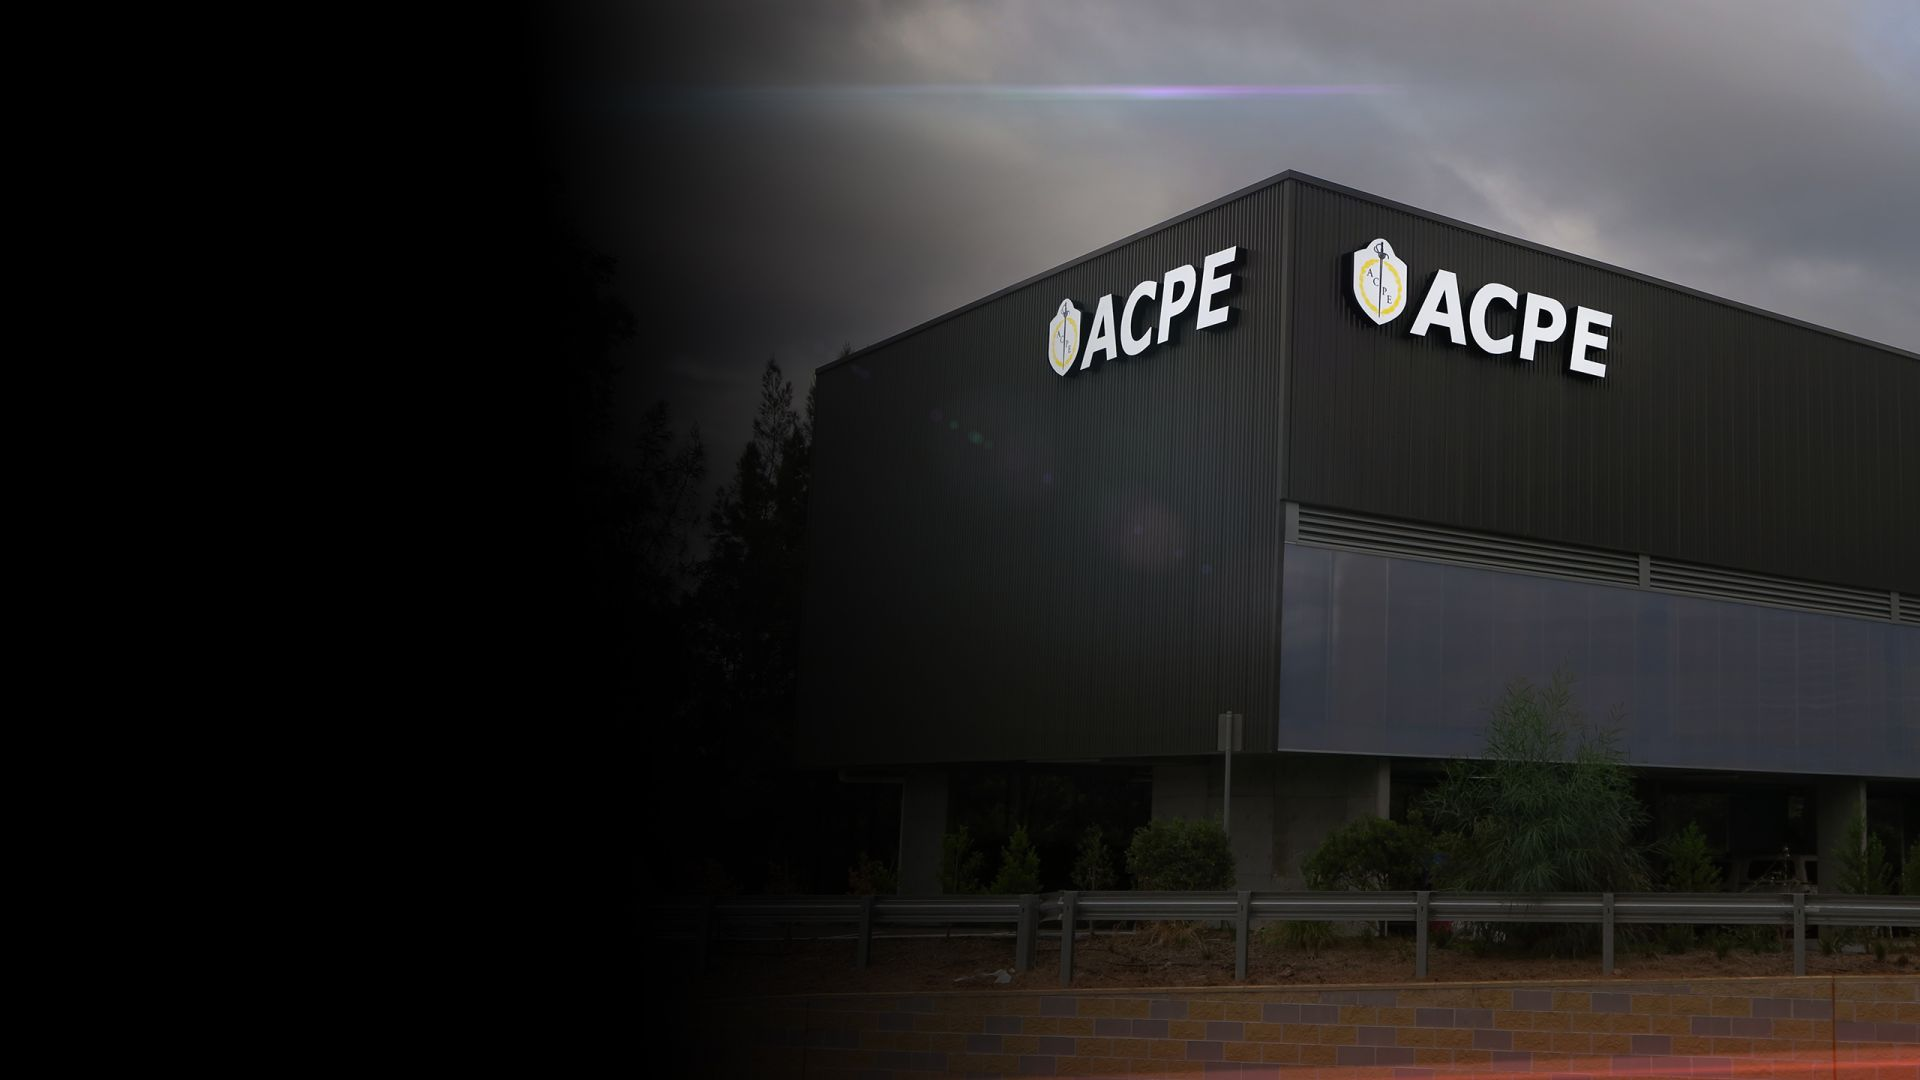 ACPE illuminated building signage